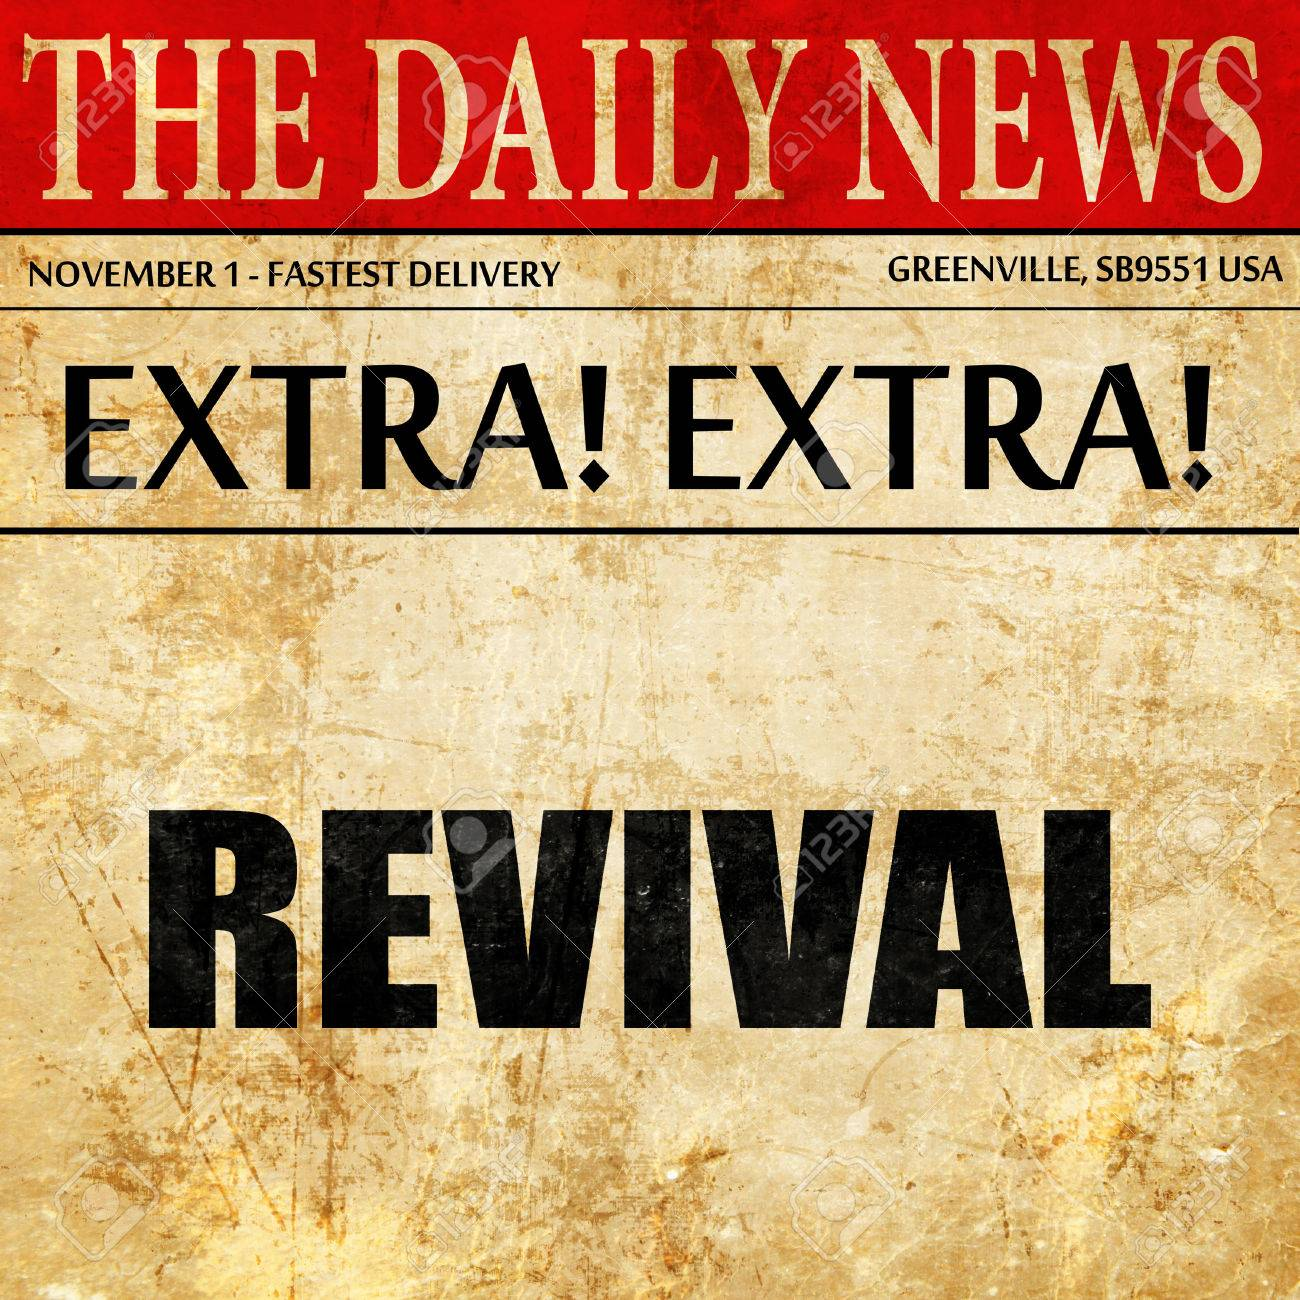 revival, article text in newspaper - 71601796